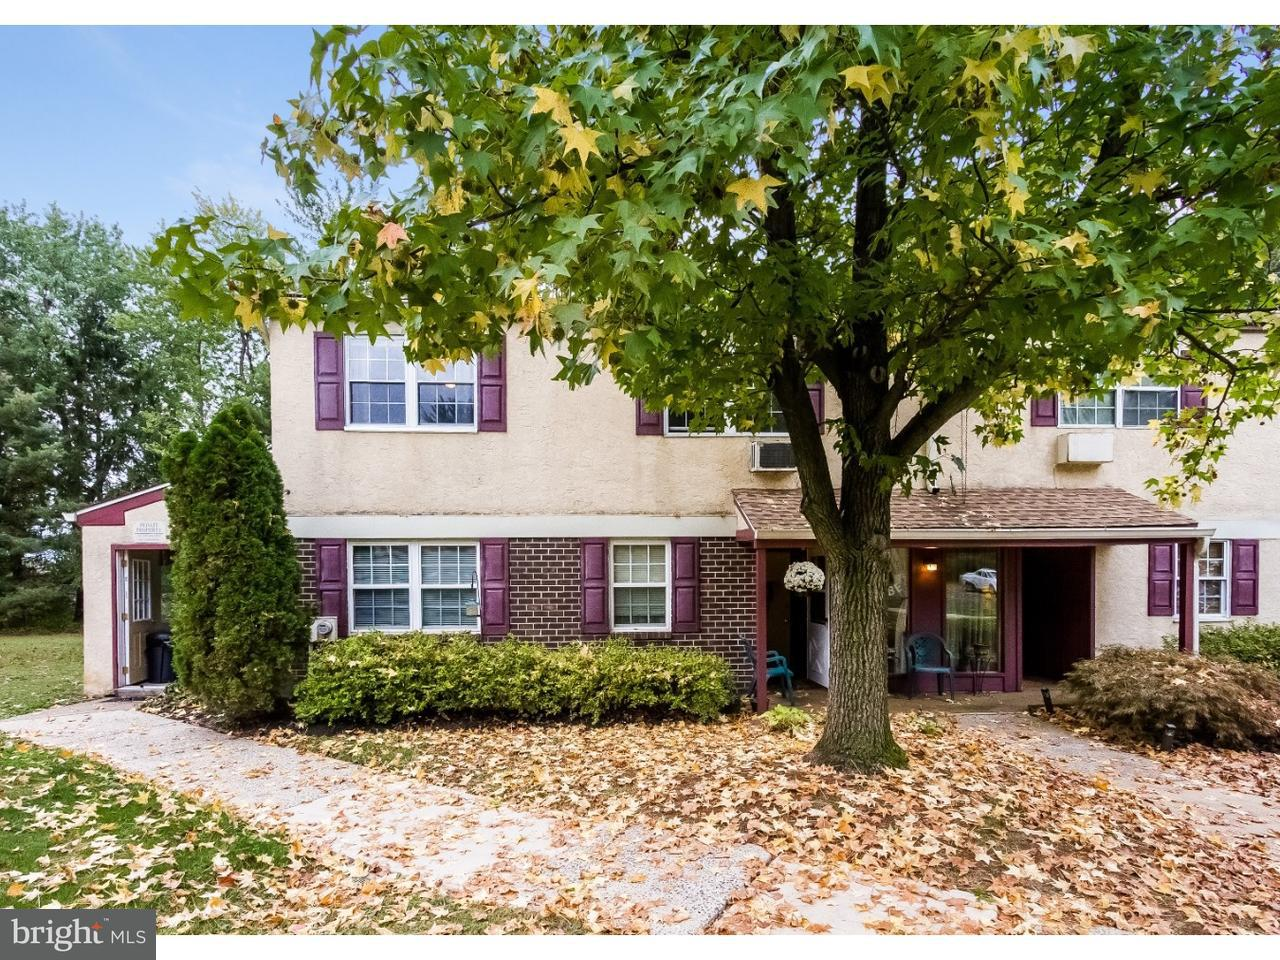 Townhouse for Sale at 178 ELEPHANT RD #B24 Dublin, Pennsylvania 18917 United States